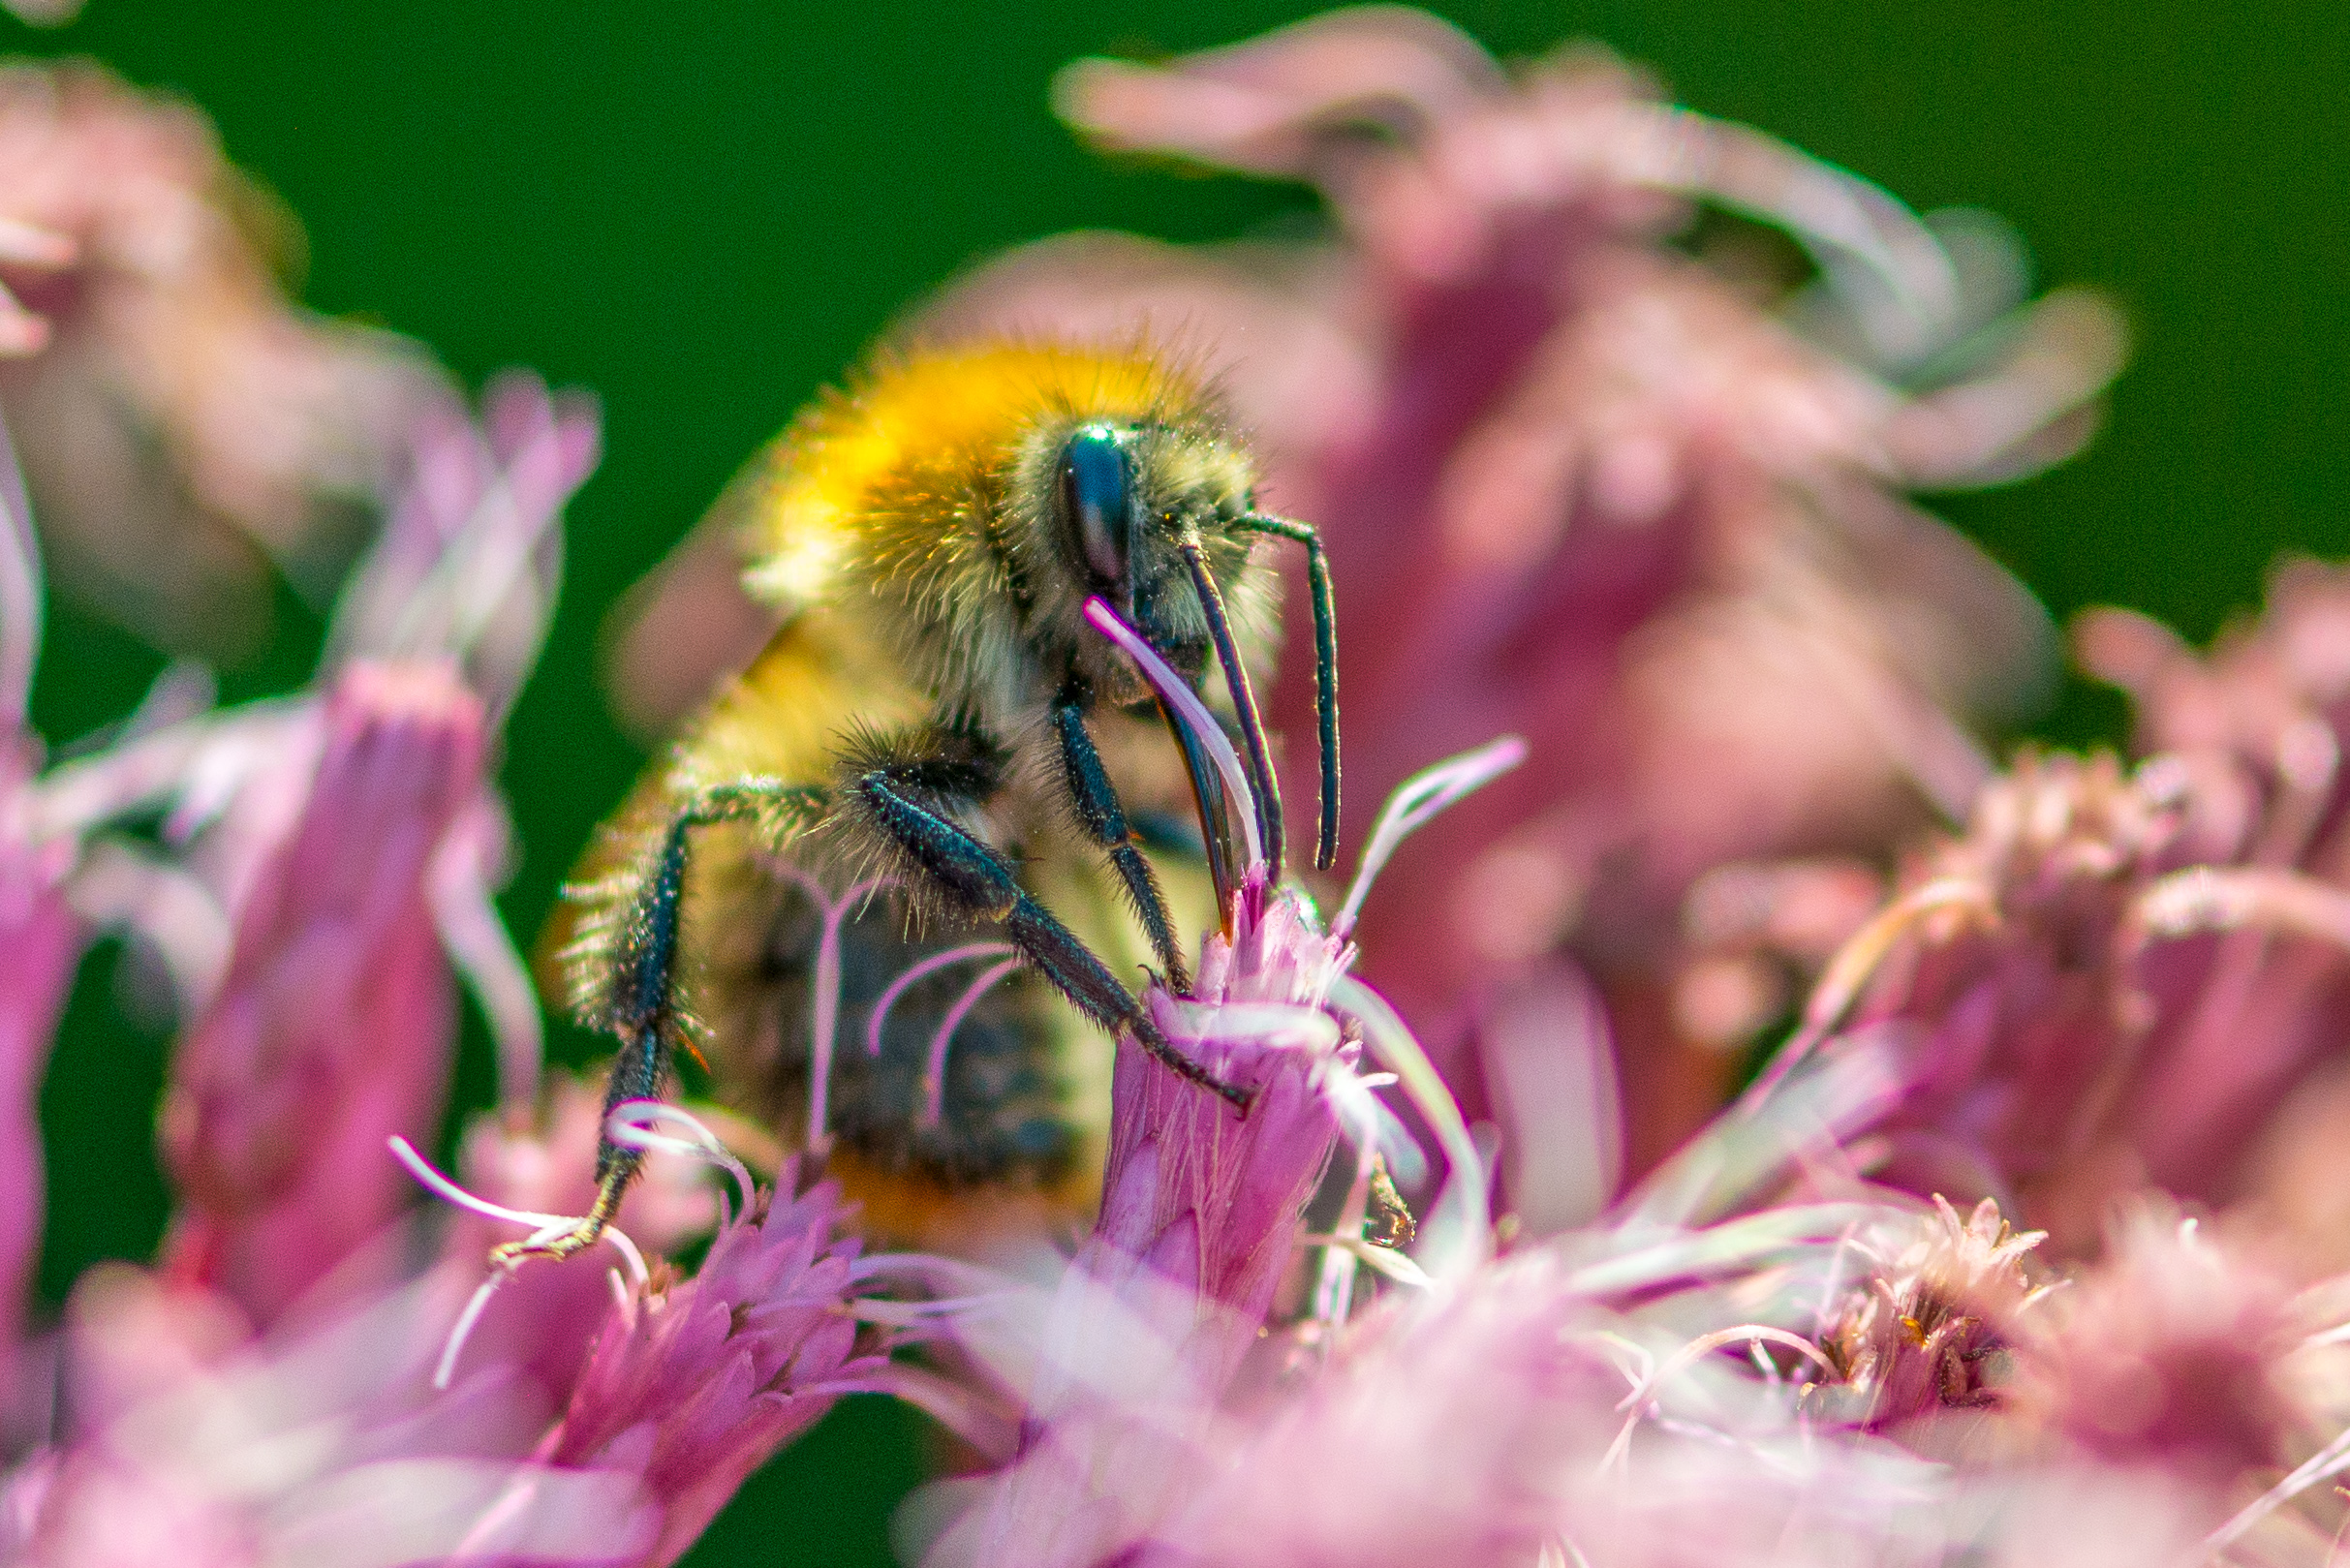 Bumblebee, maybe a Brown-banded carder bee